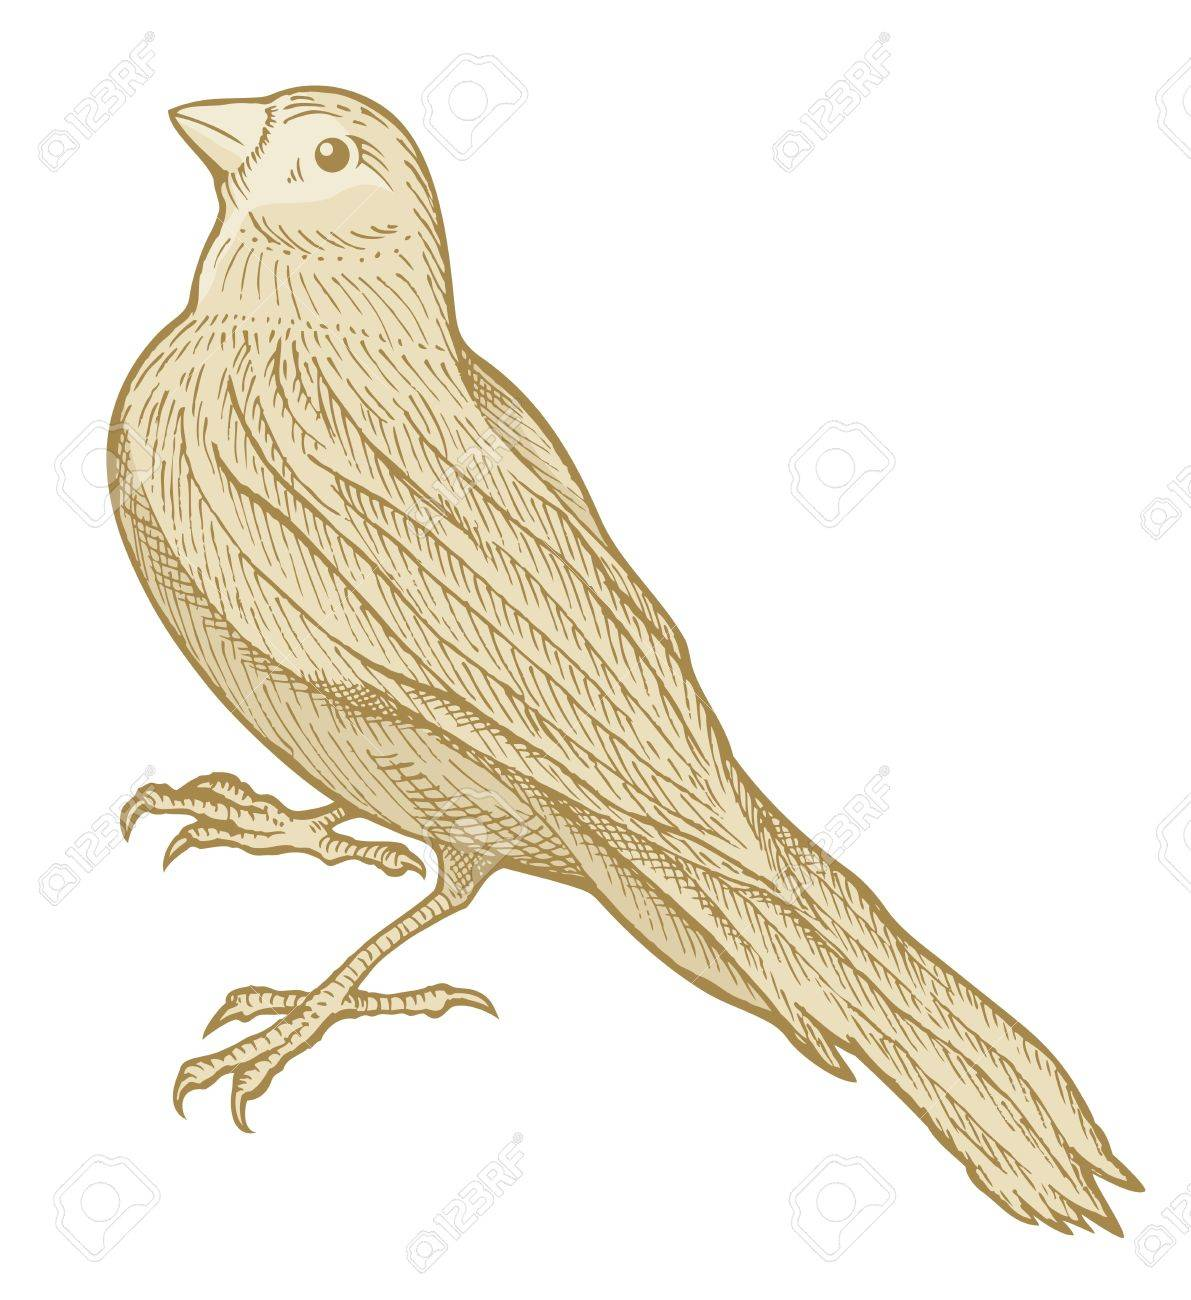 Bird sketch made with pen and ink isolated on white background colored with beige tones. - 10255305